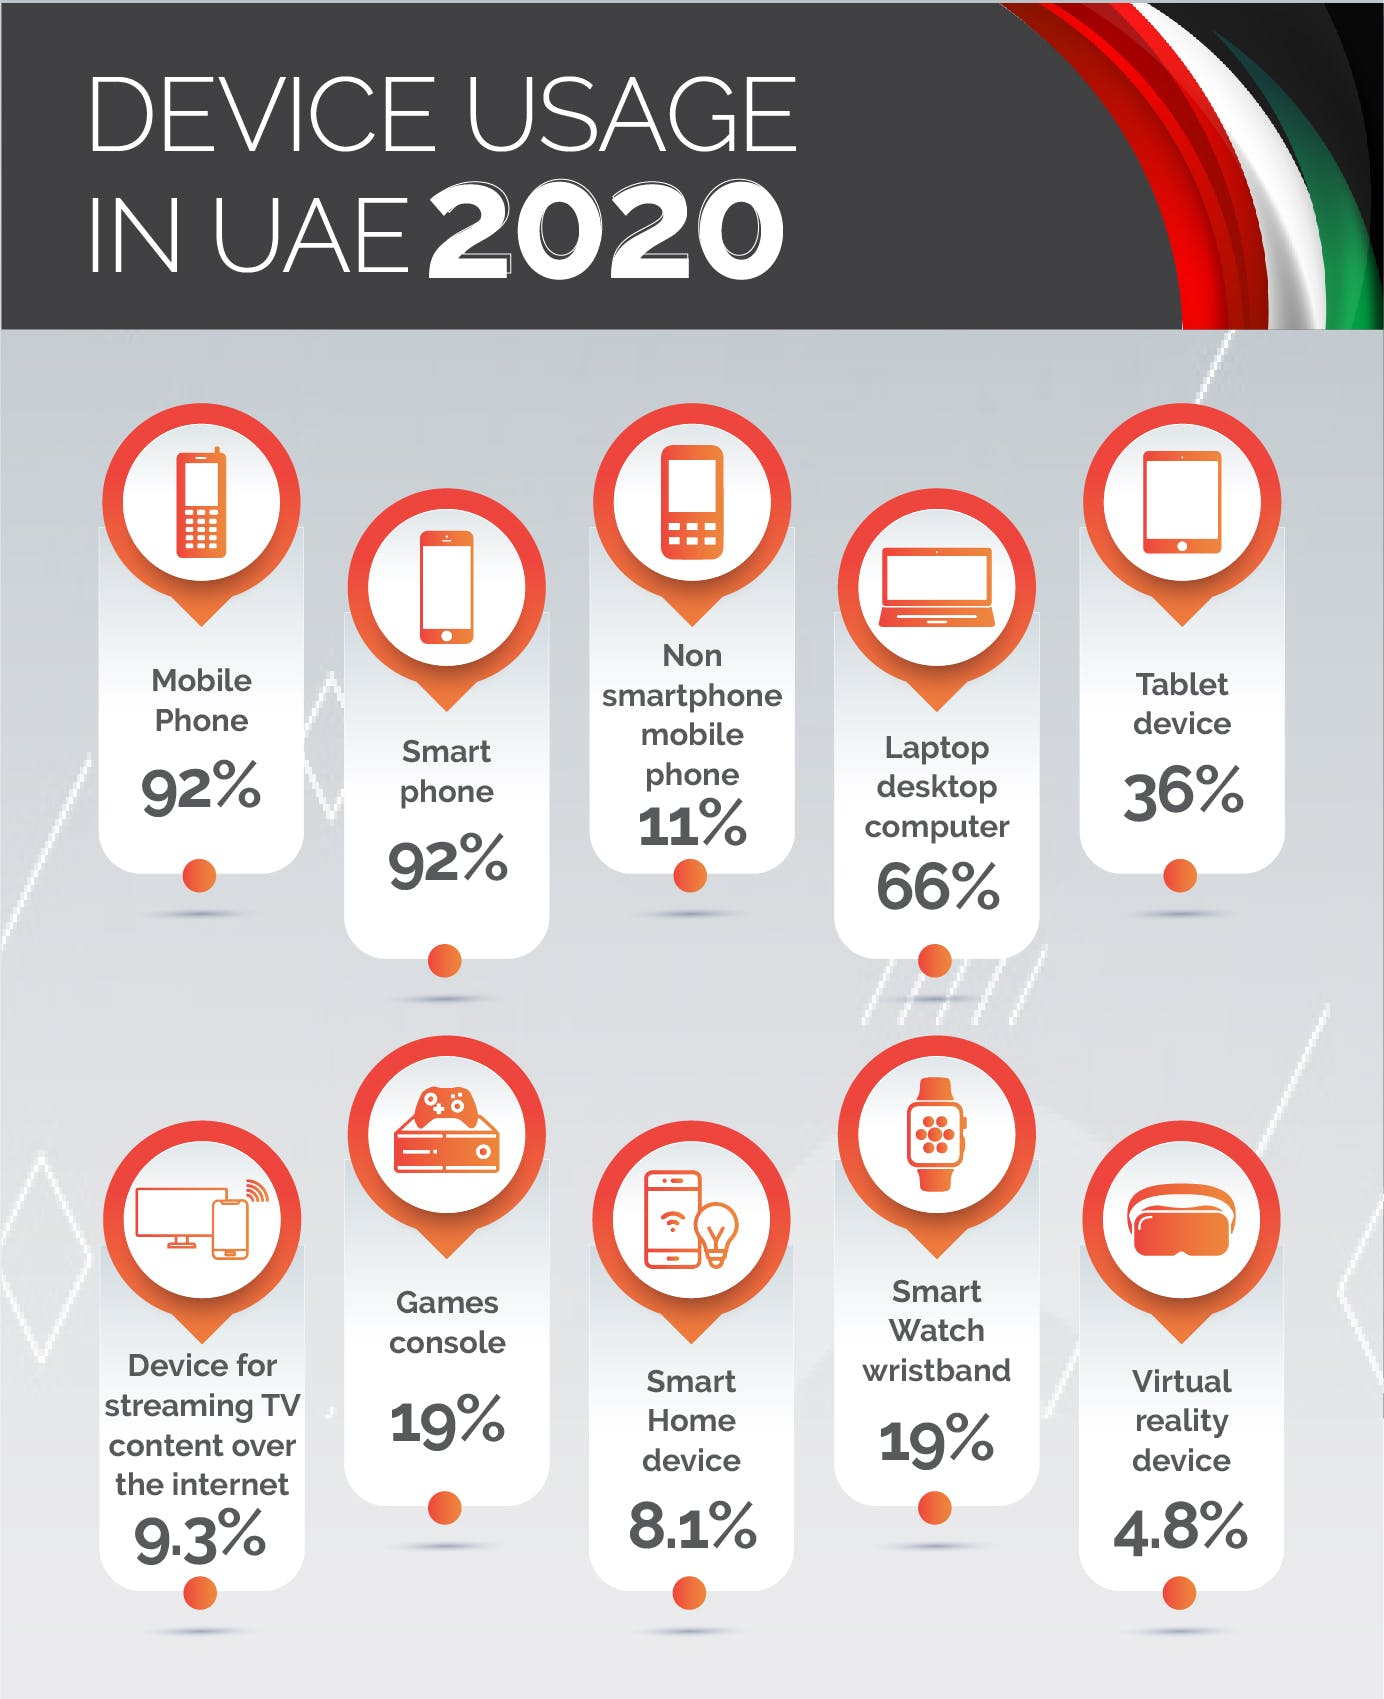 Device usage in UAE 2020